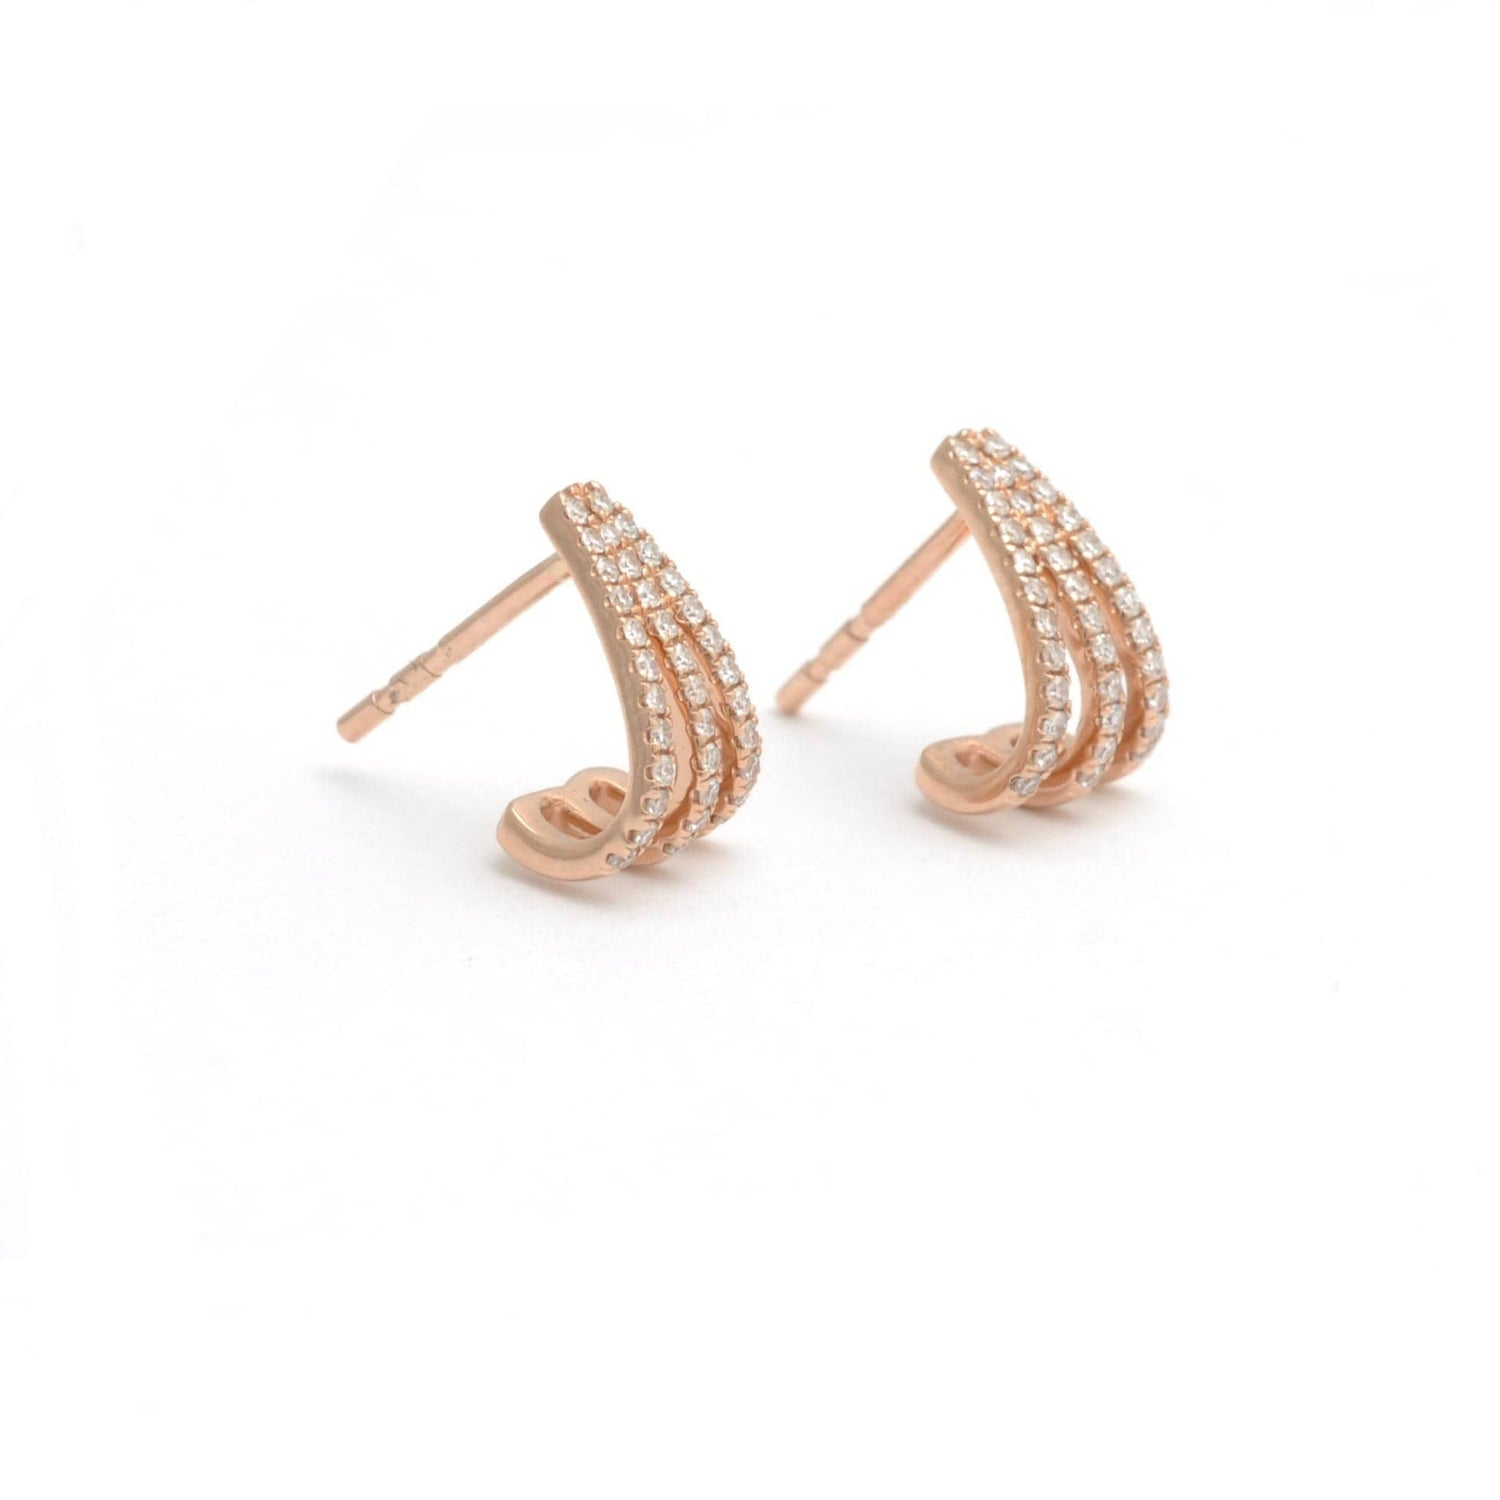 Triple Row Diamond Rose Gold Earrings - Curated Los Angeles